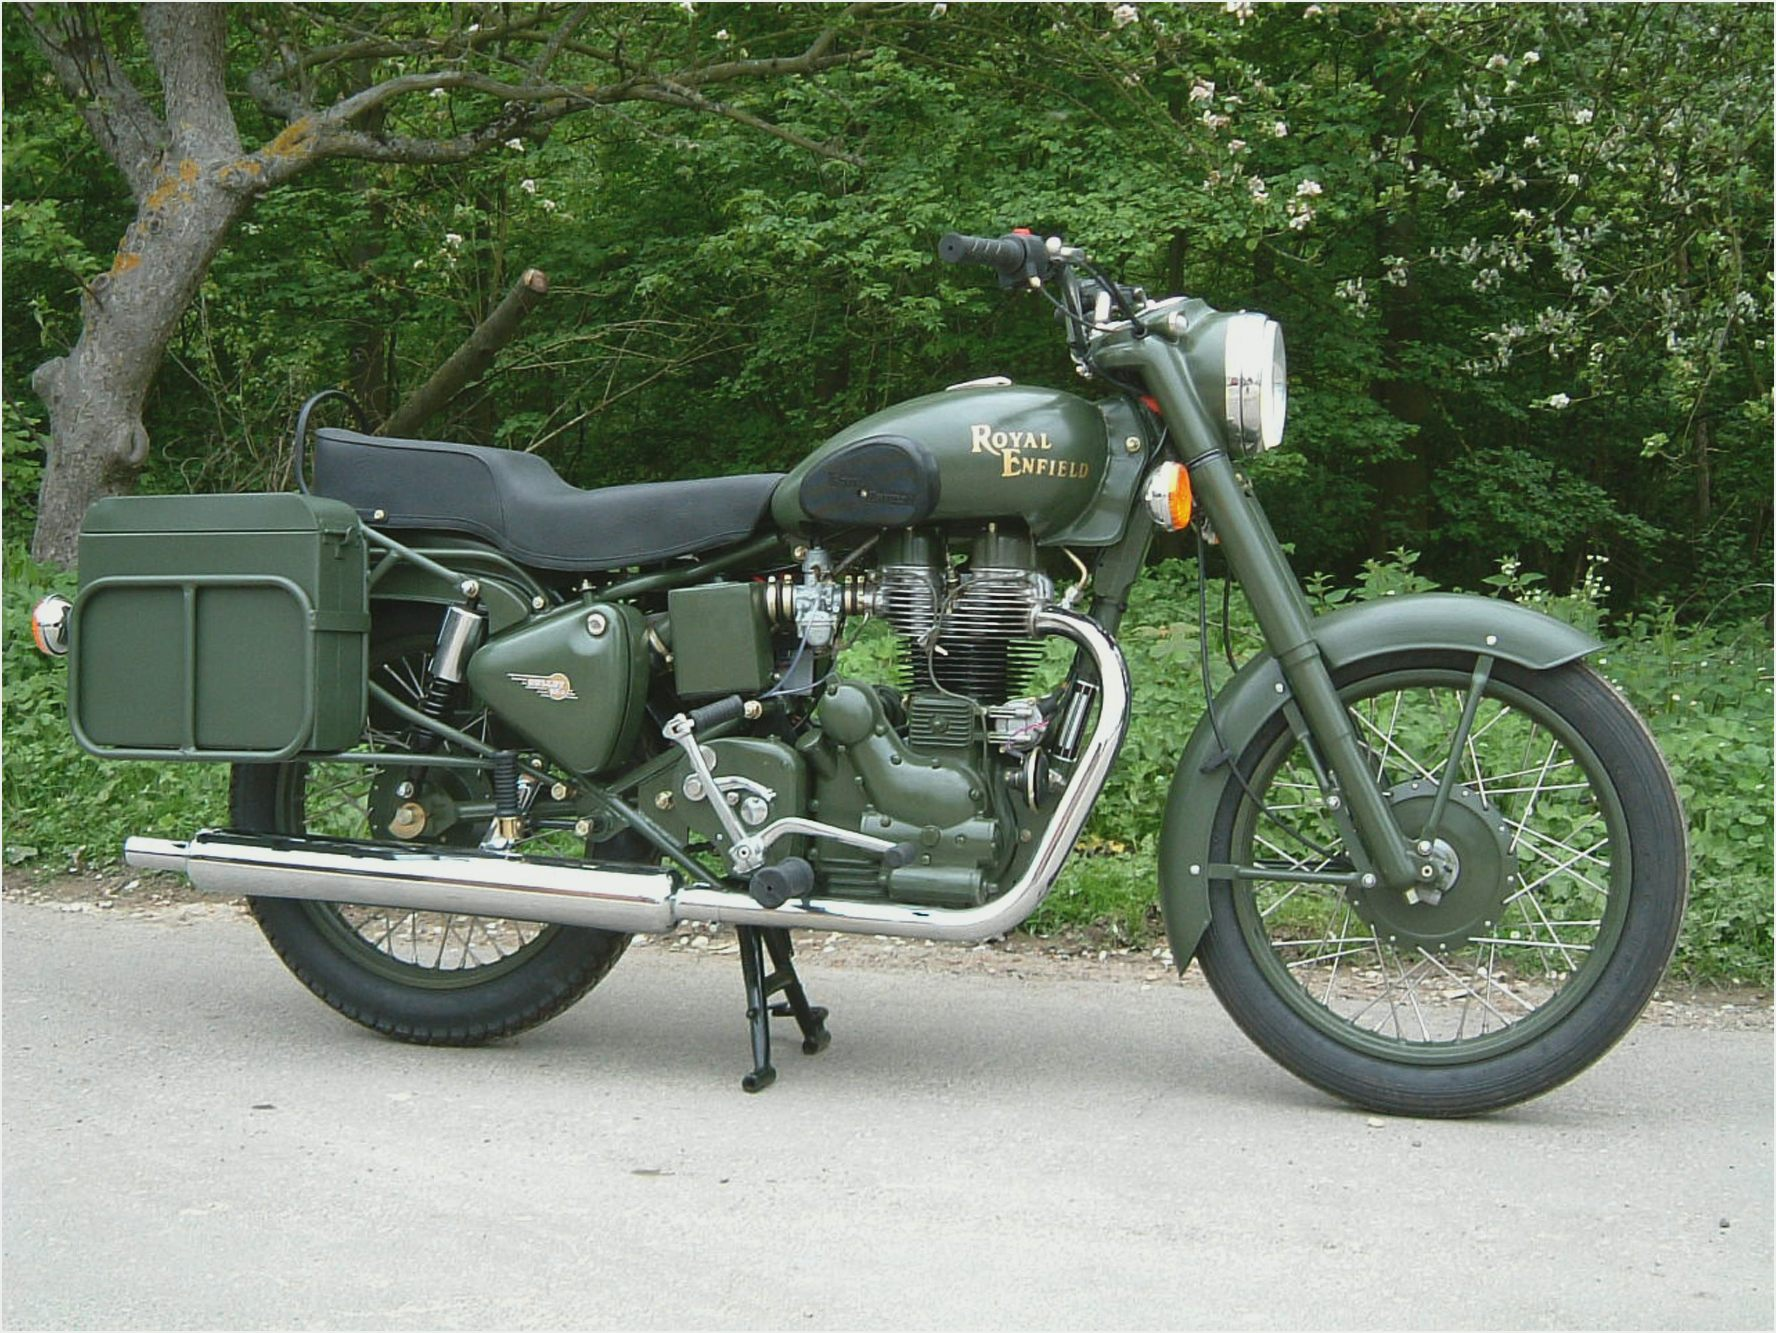 Royal Enfield Bullet 500 Army 2005 images #123259